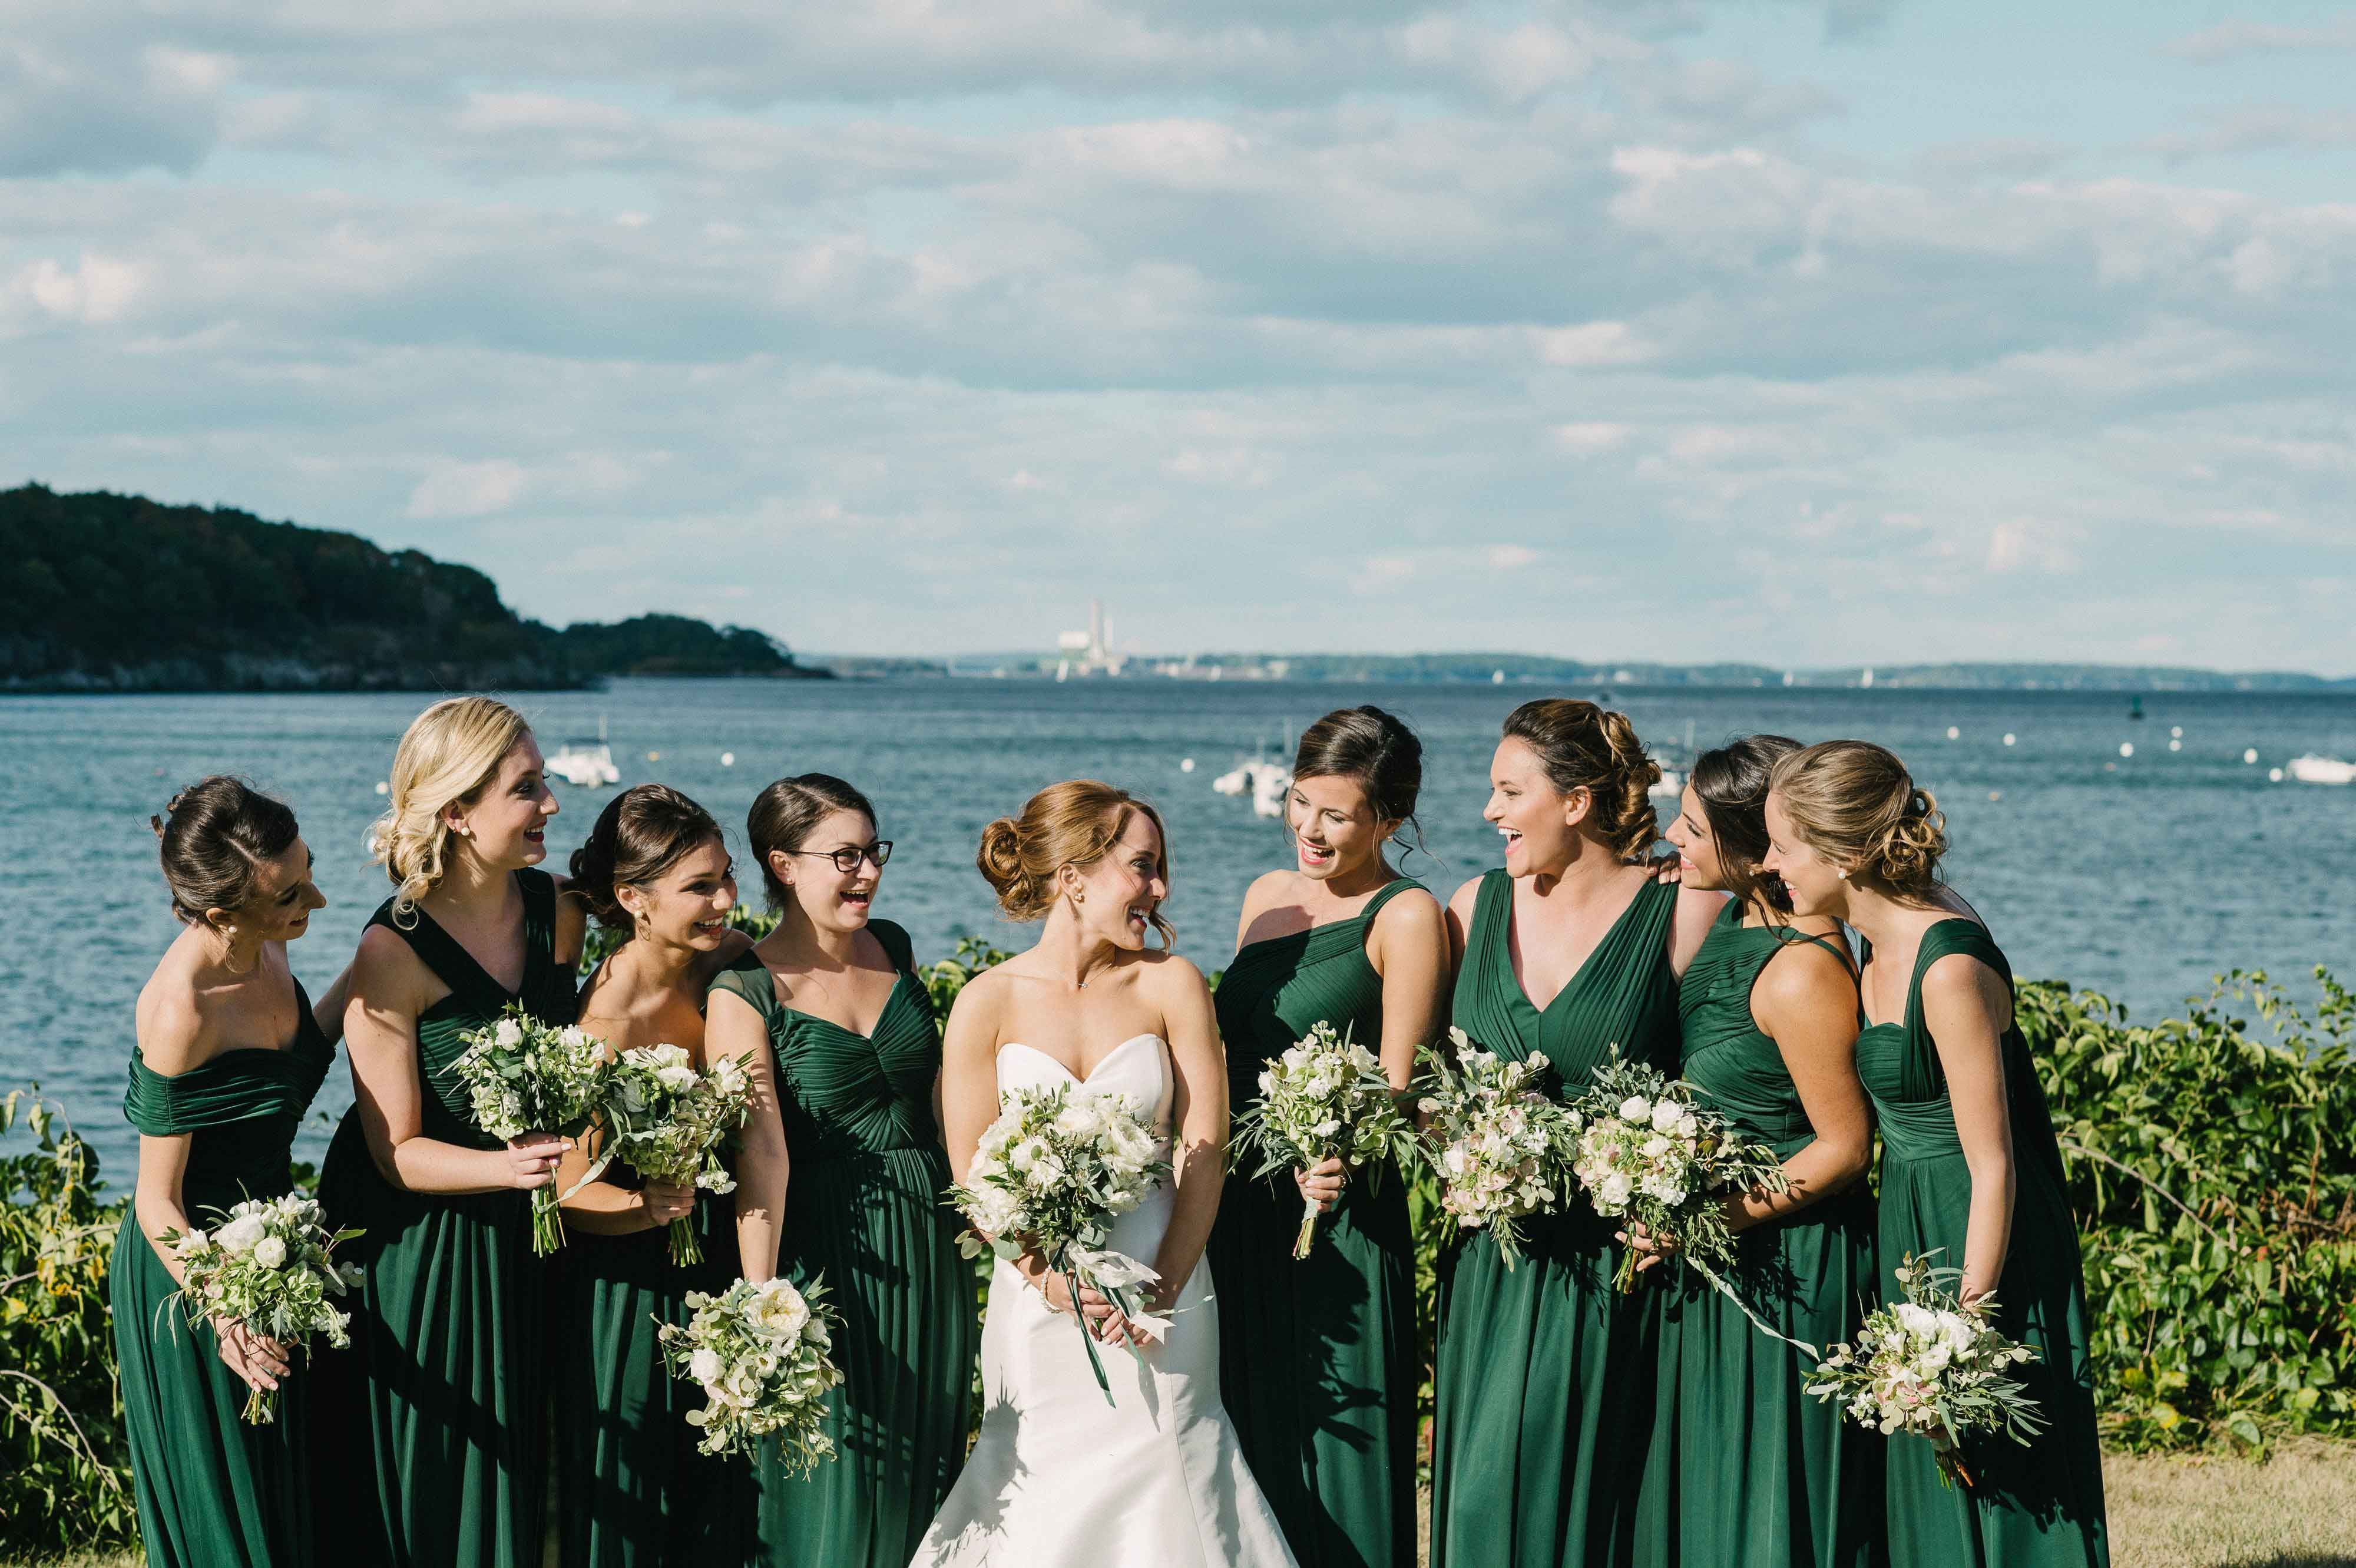 Forest Green Bridesmaid Dresses